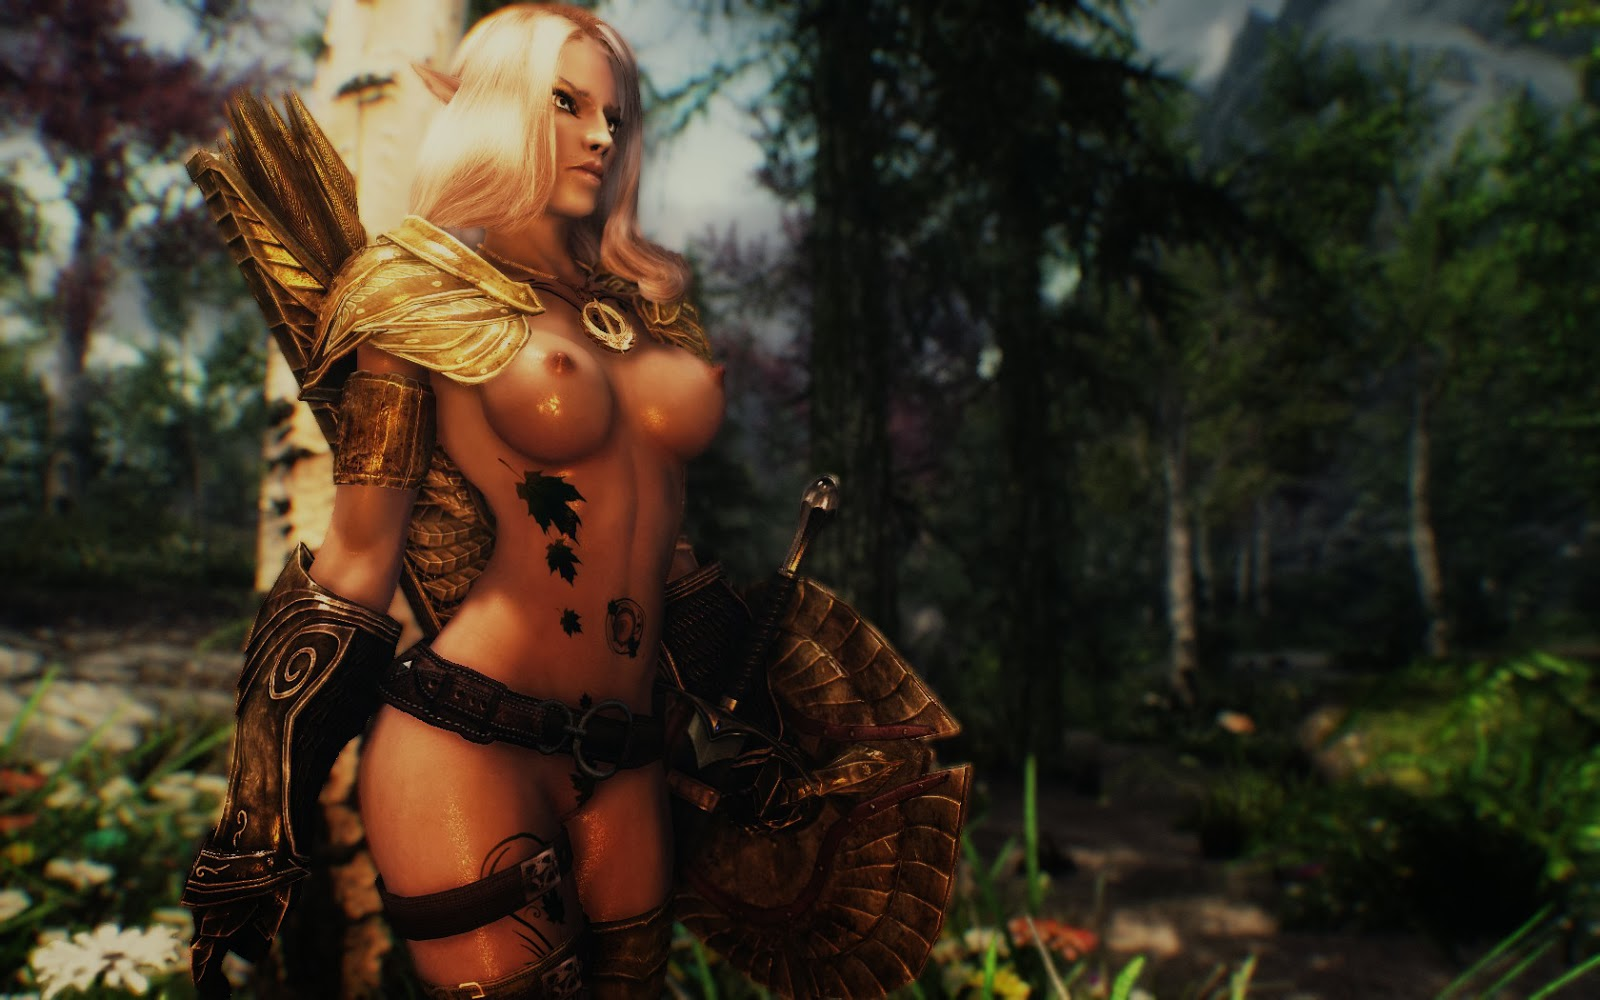 Elder scrolls sexy elf exposed woman